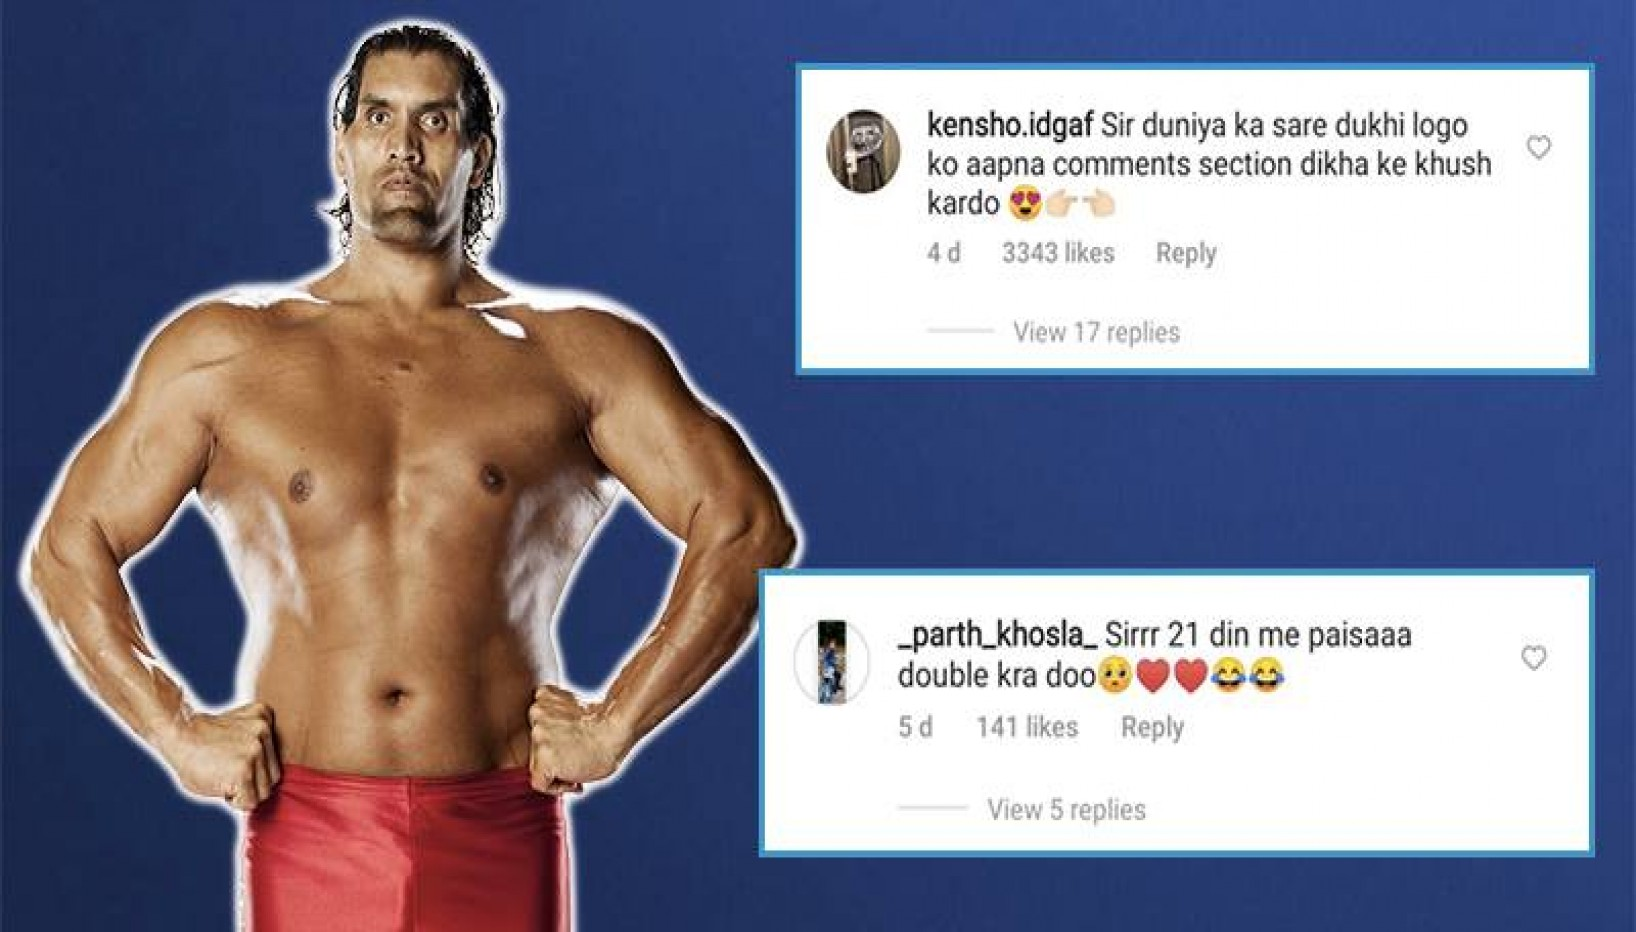 From Bullying Bill Gates To Appointing Salman Khan As His Driver, Netizens Are Making Bizarre Requests Of The Great Khali